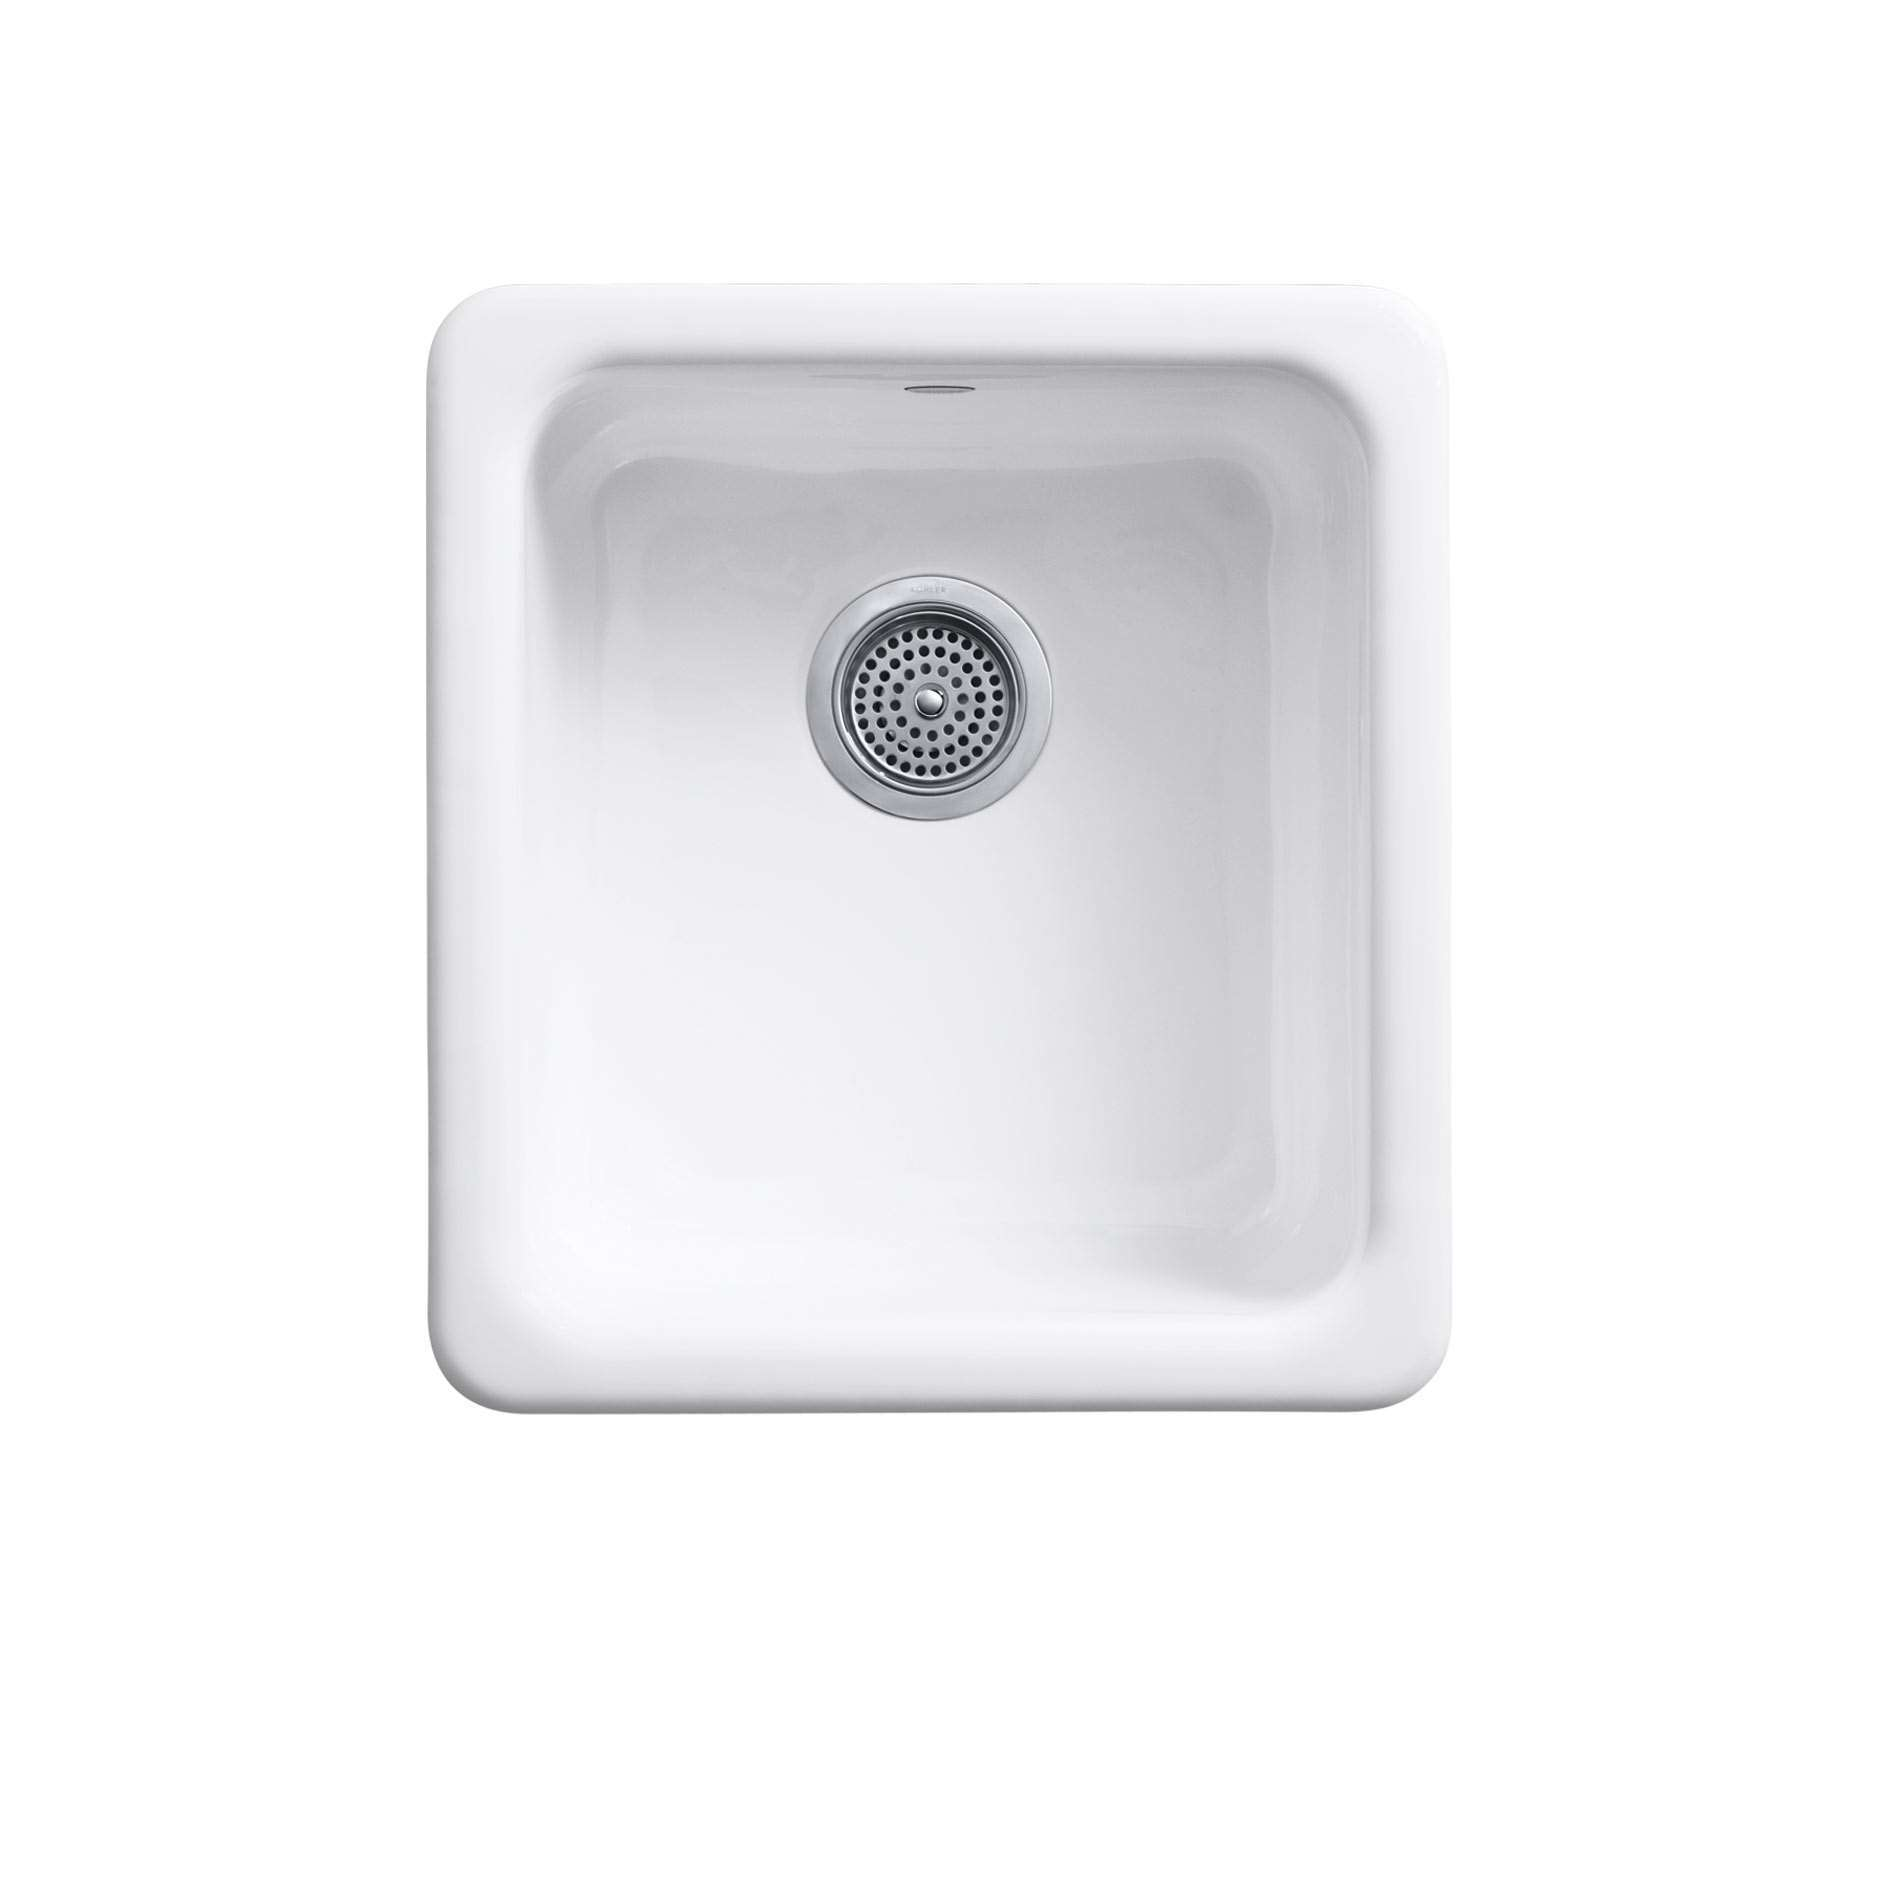 Picture of iron tones 6584 cast iron sink